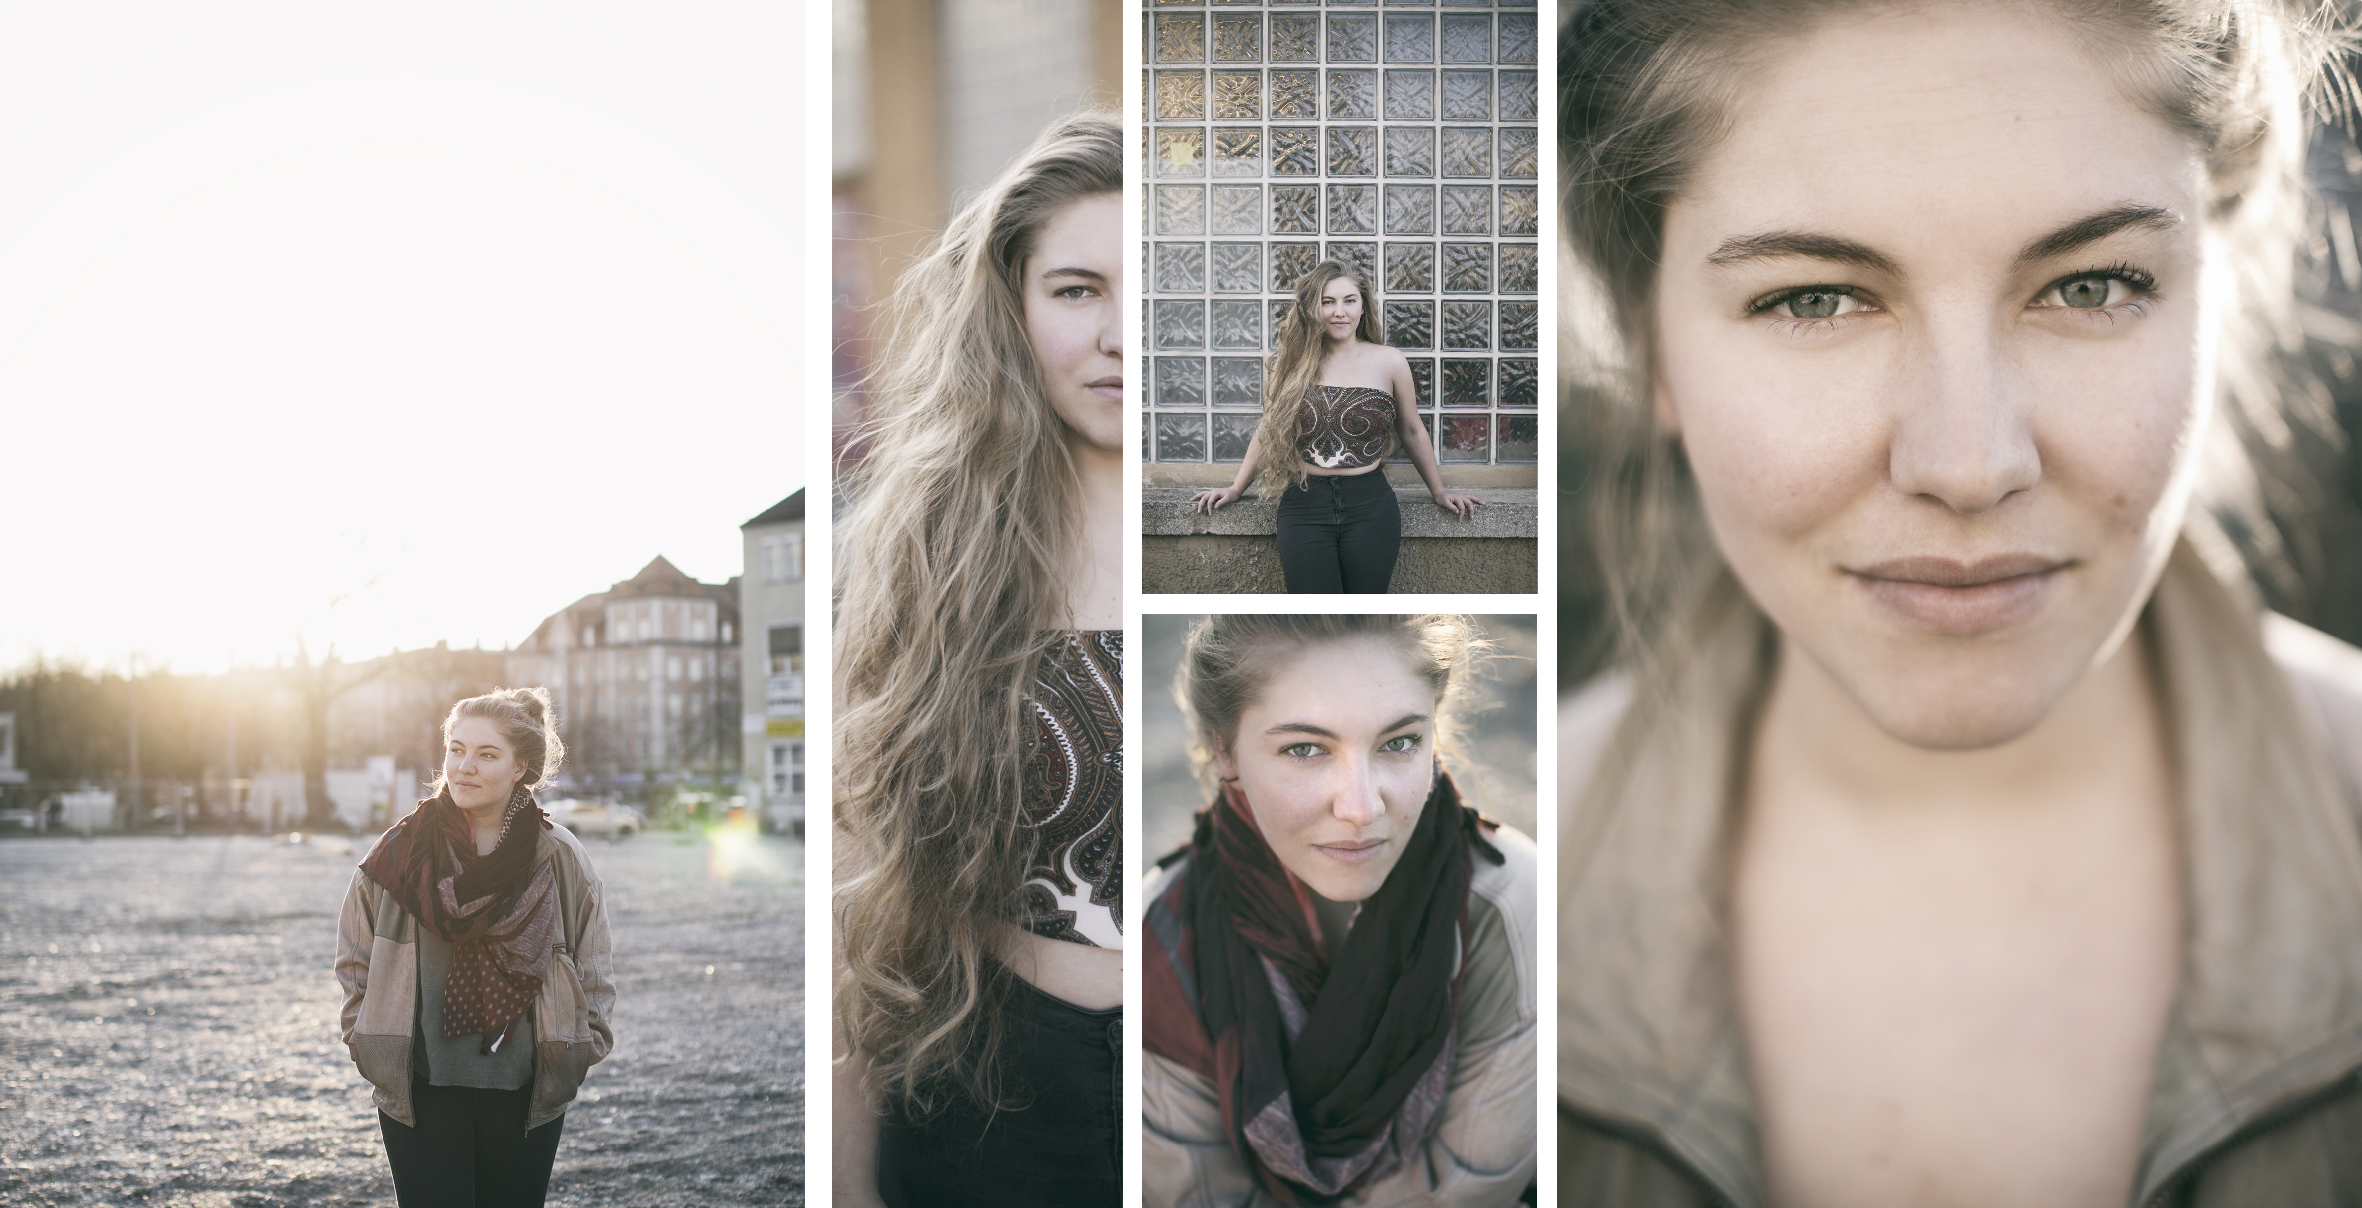 Magdalena-menzinger-photopgraphy-about